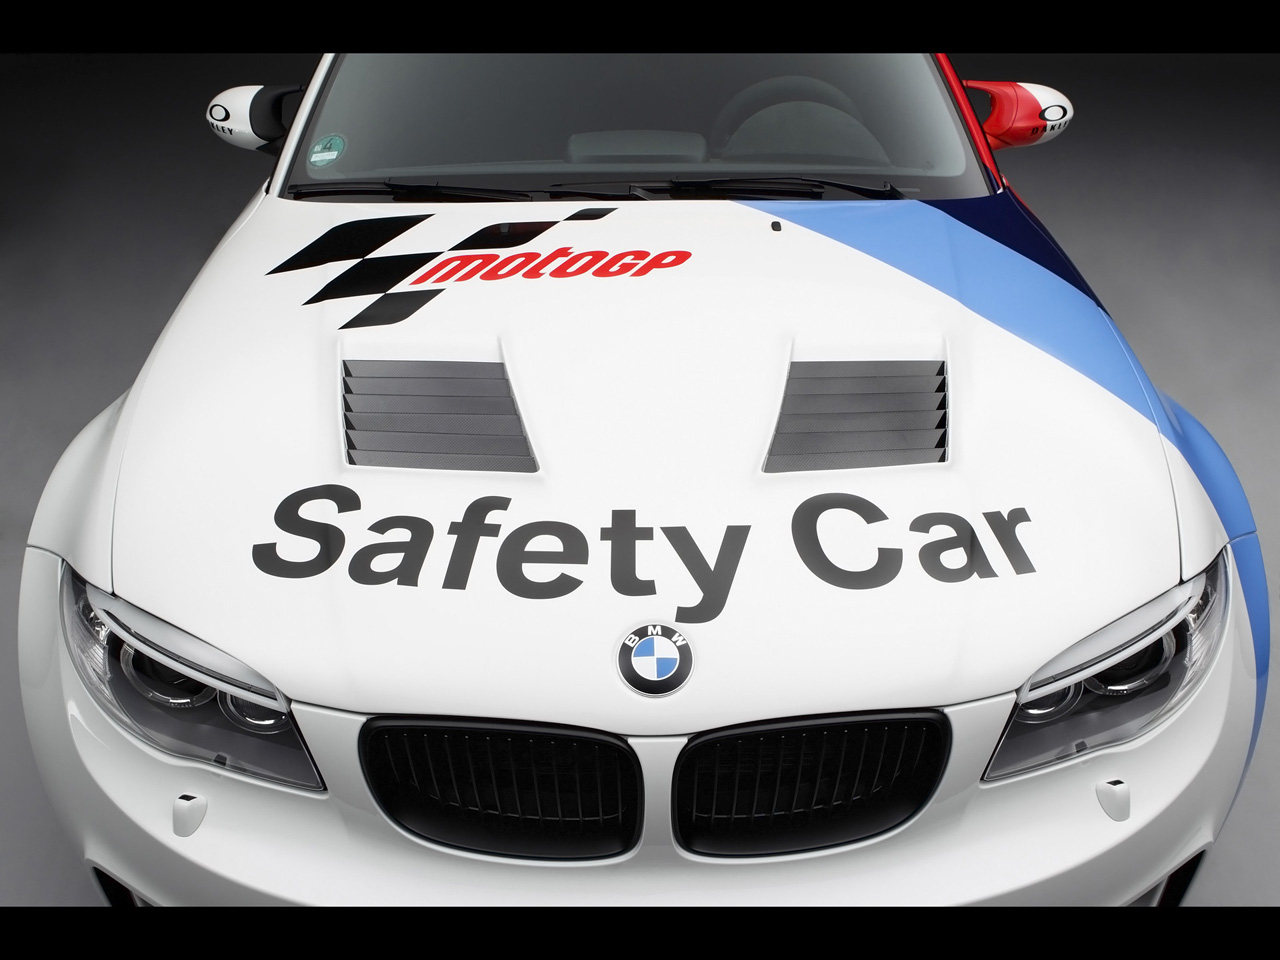 2019 BMW 1 Series M Coupe MotoGP Safety Car photo - 4